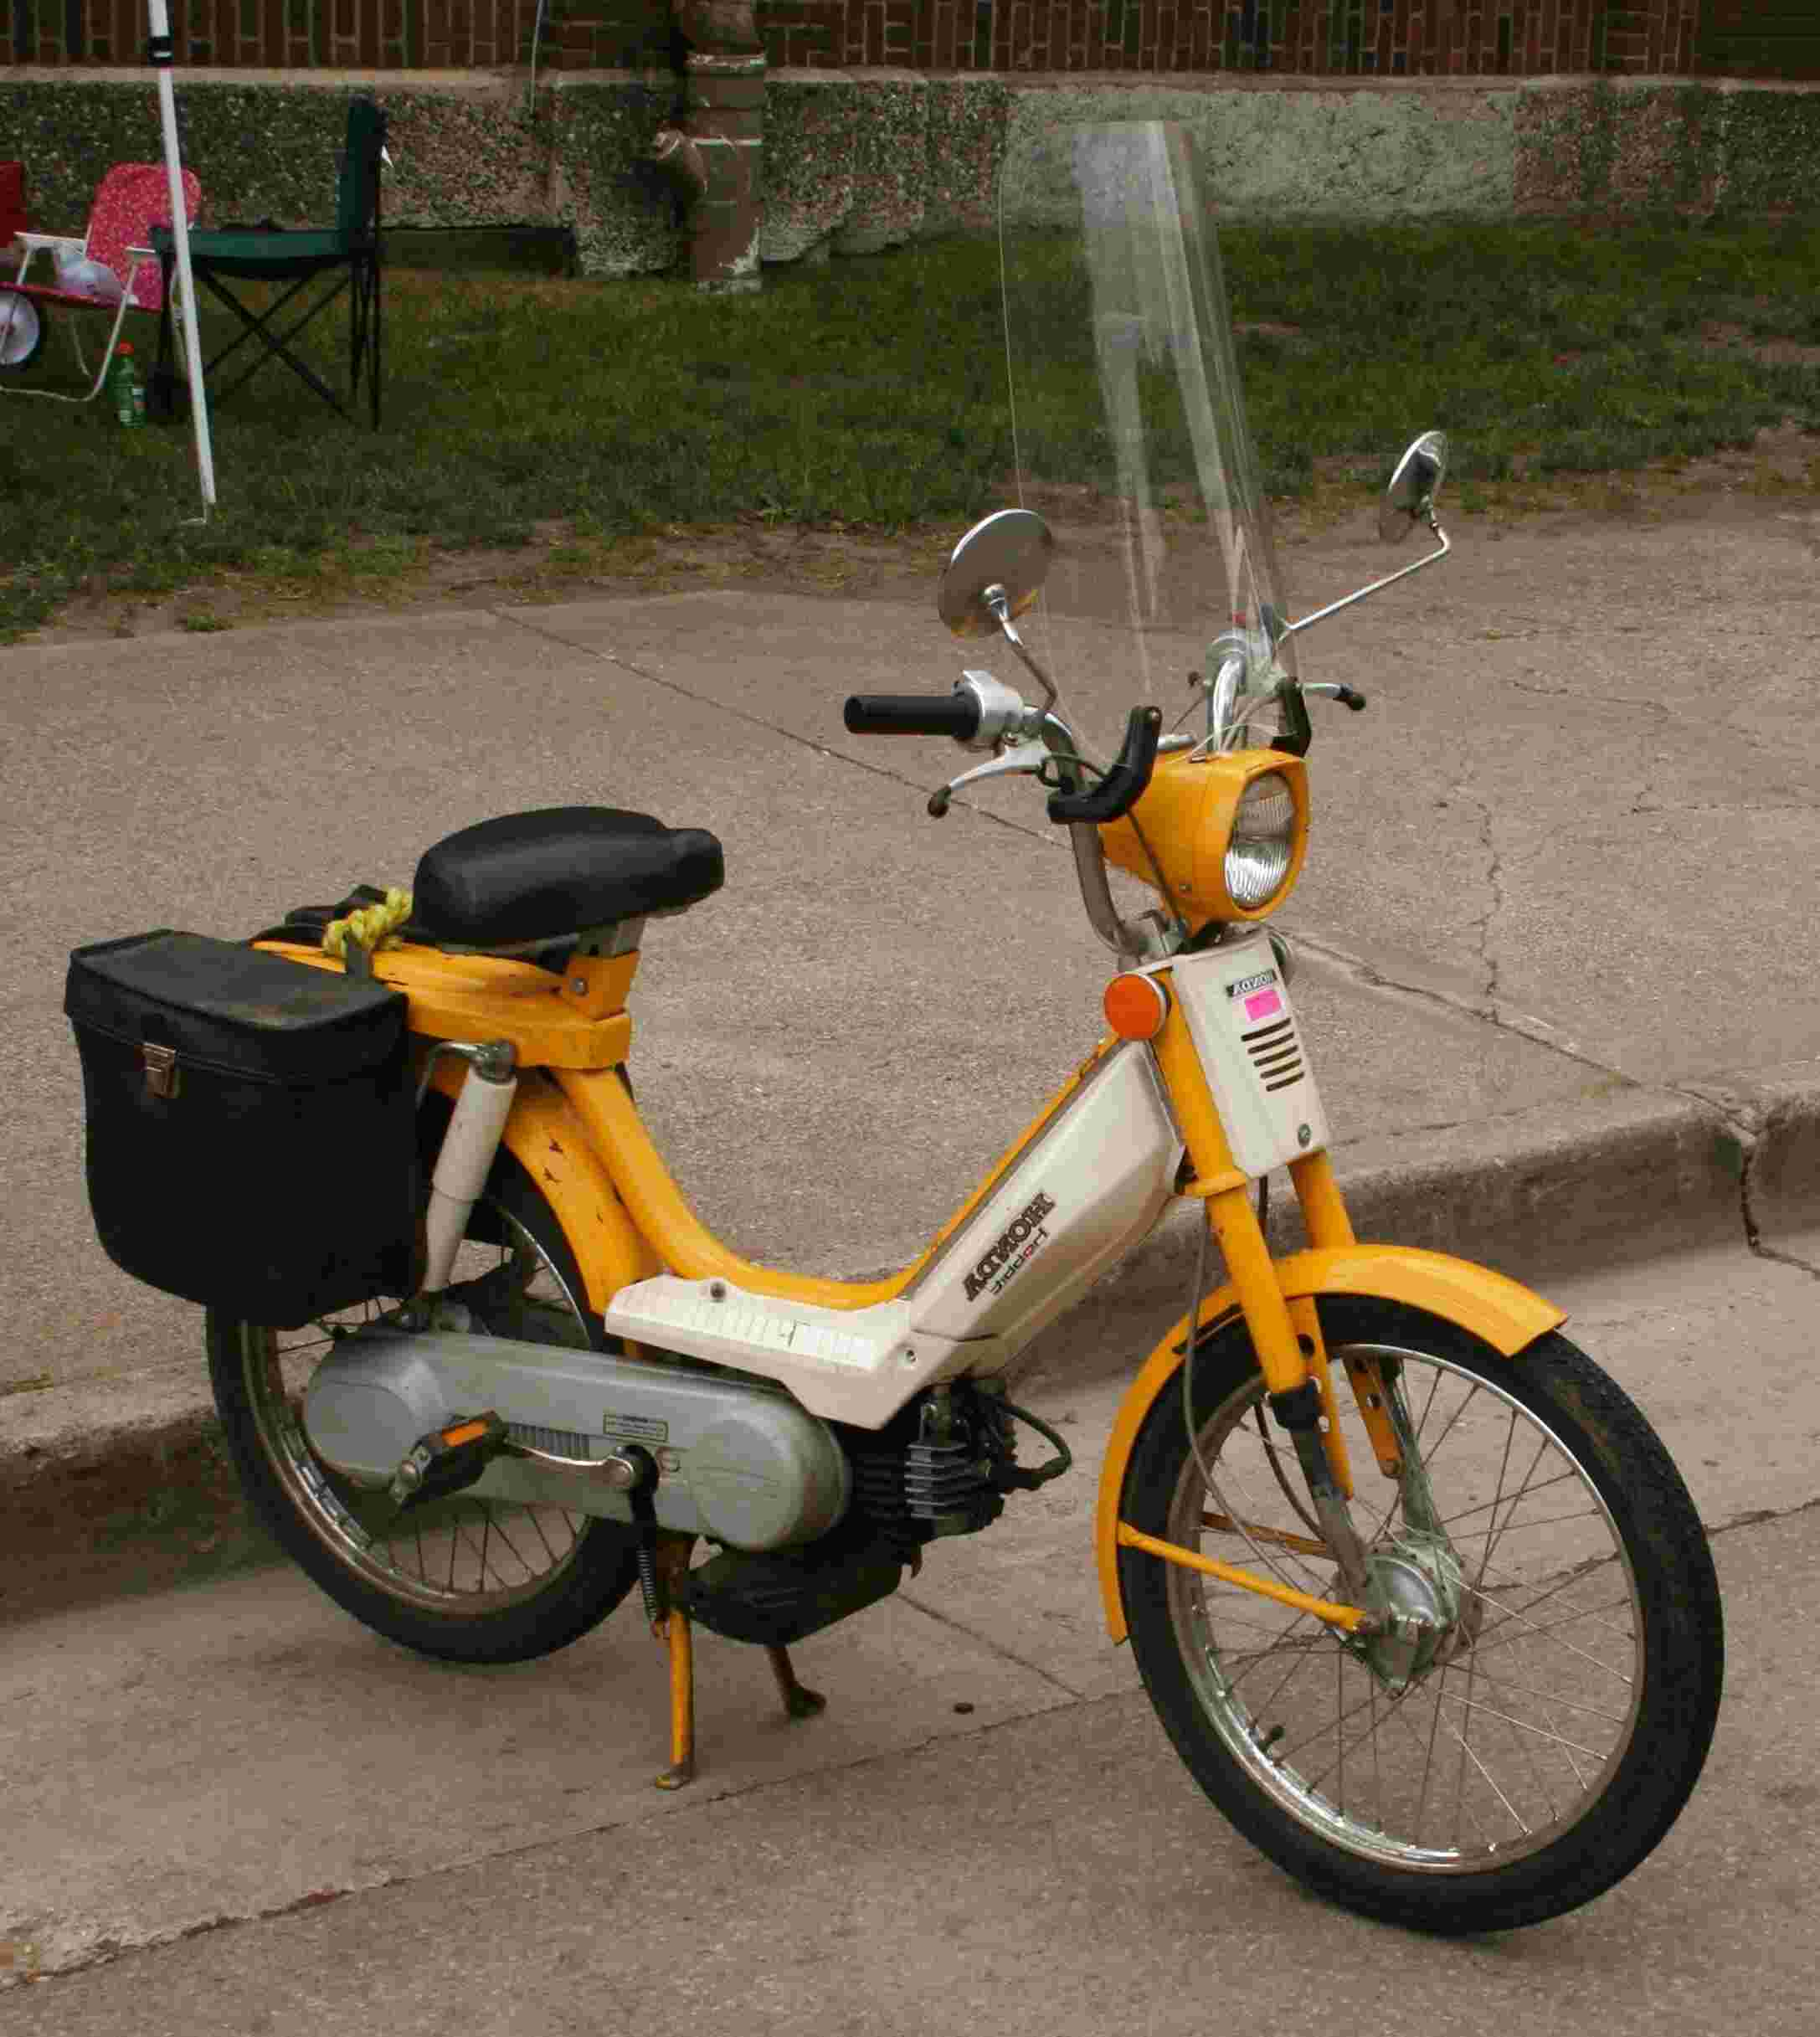 pedal moped for sale